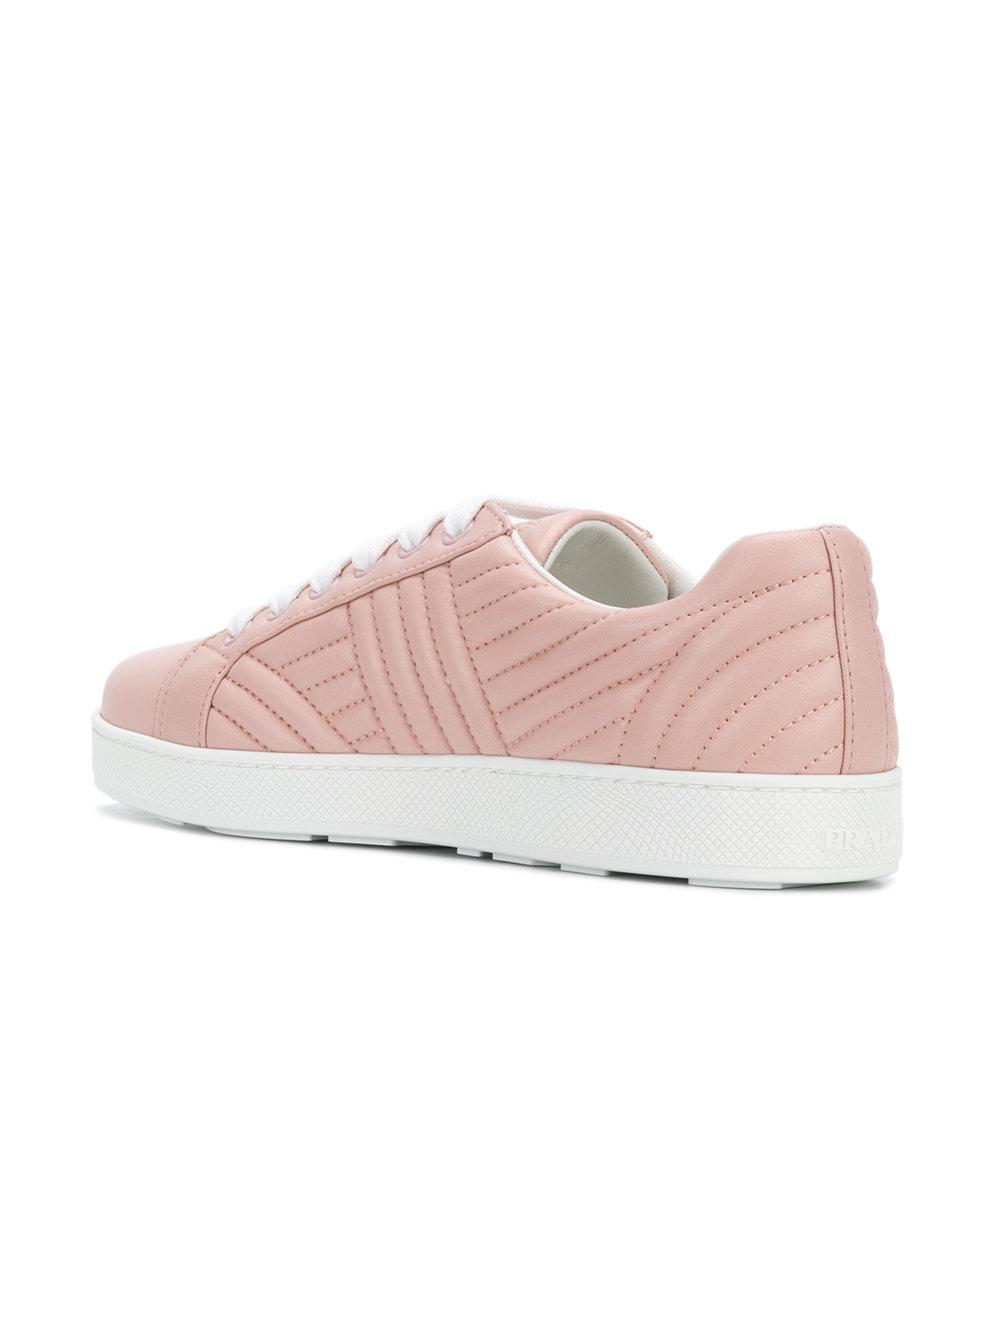 lace-up sneakers - Pink & Purple Prada ZPqC8tJ